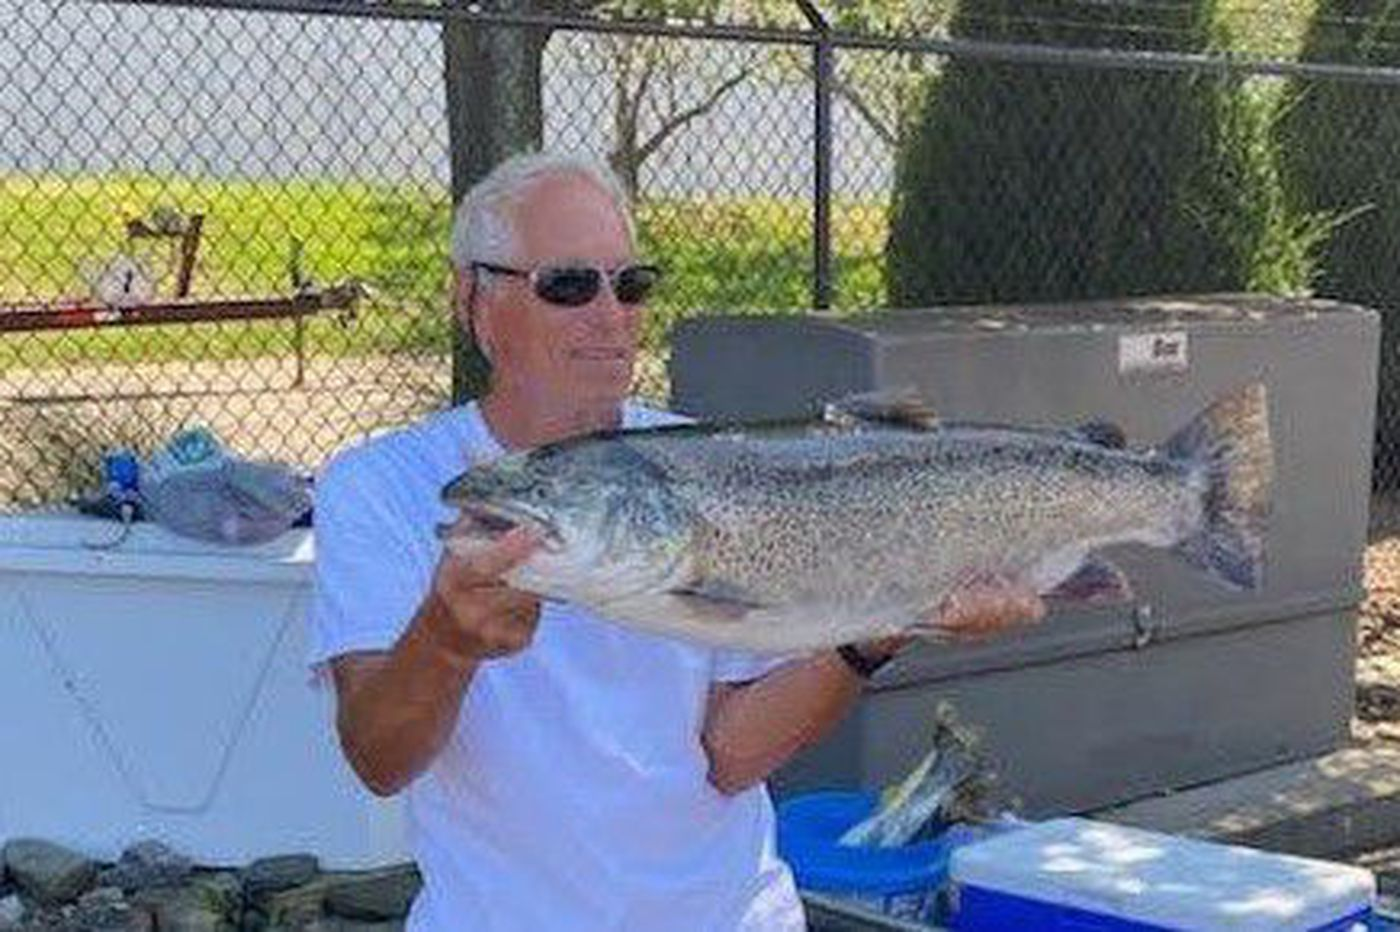 Angler catches 20-pound brown trout in Lake Erie, setting Pennsylvania record